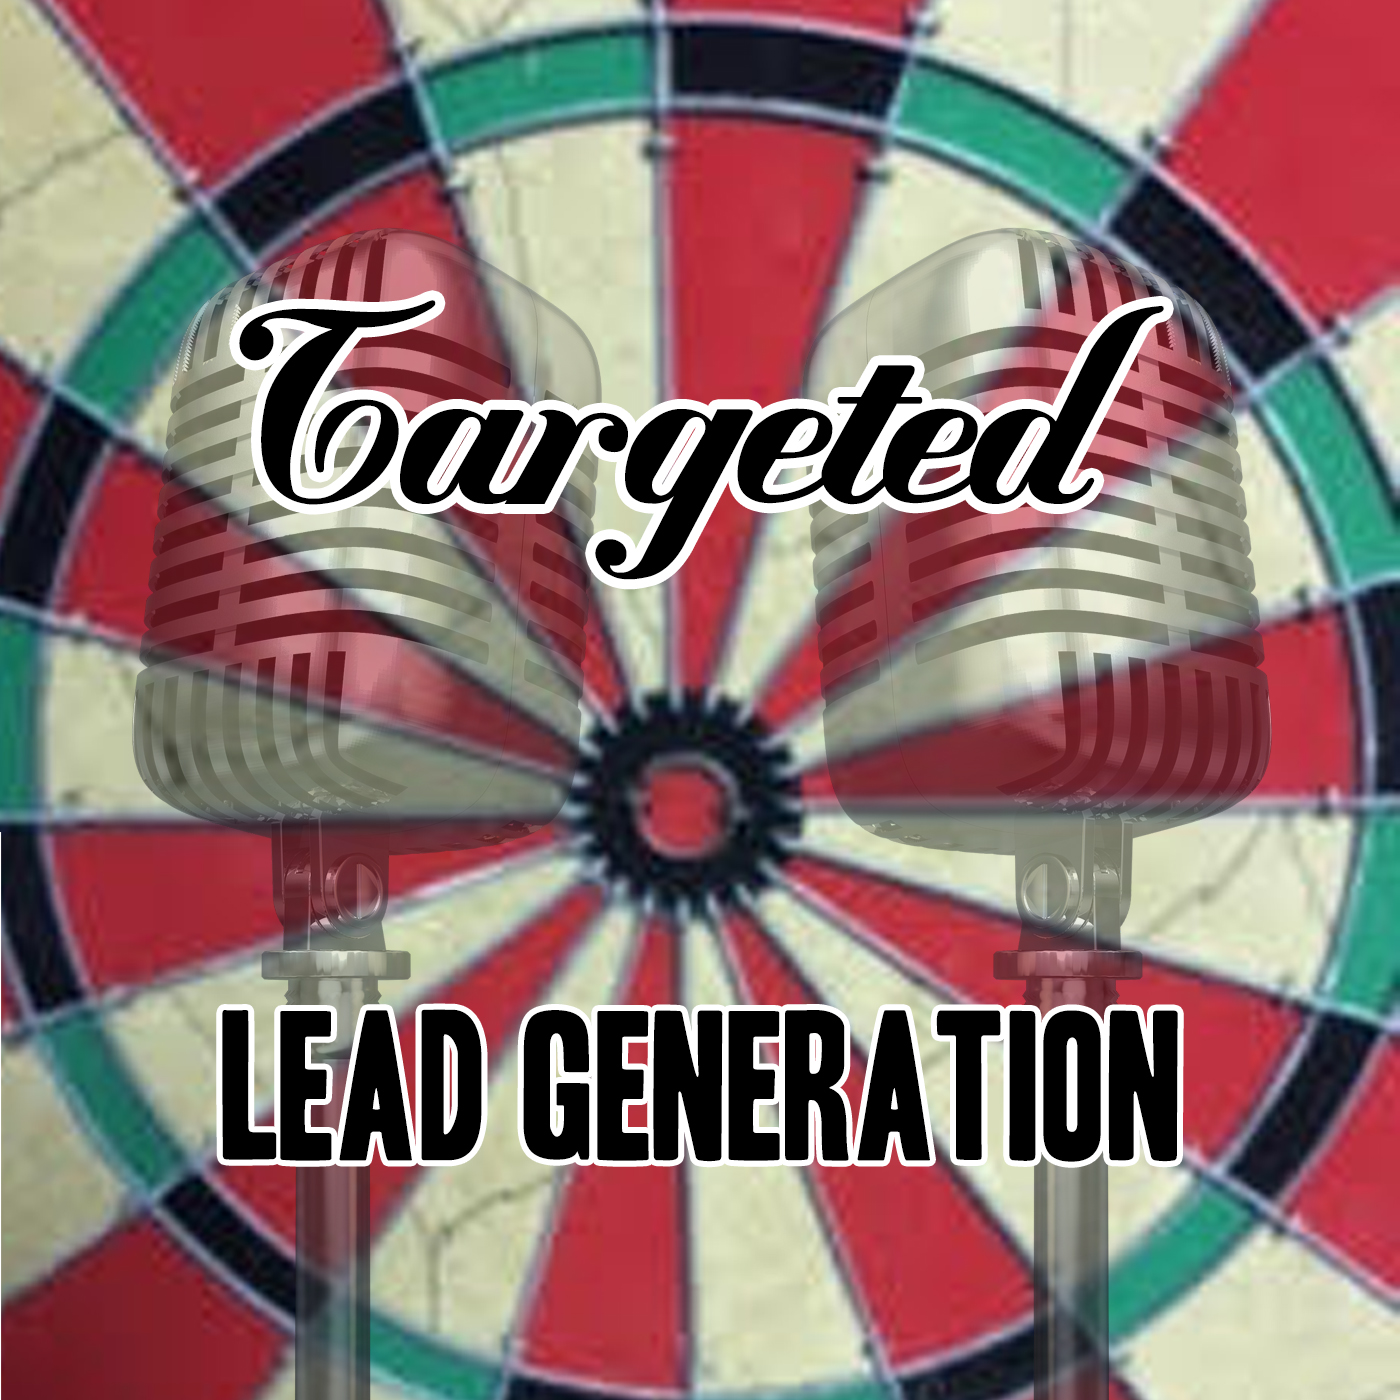 Targeted Lead Generation - Helping you discover and find the best lead generation tools and techniques for your business show art